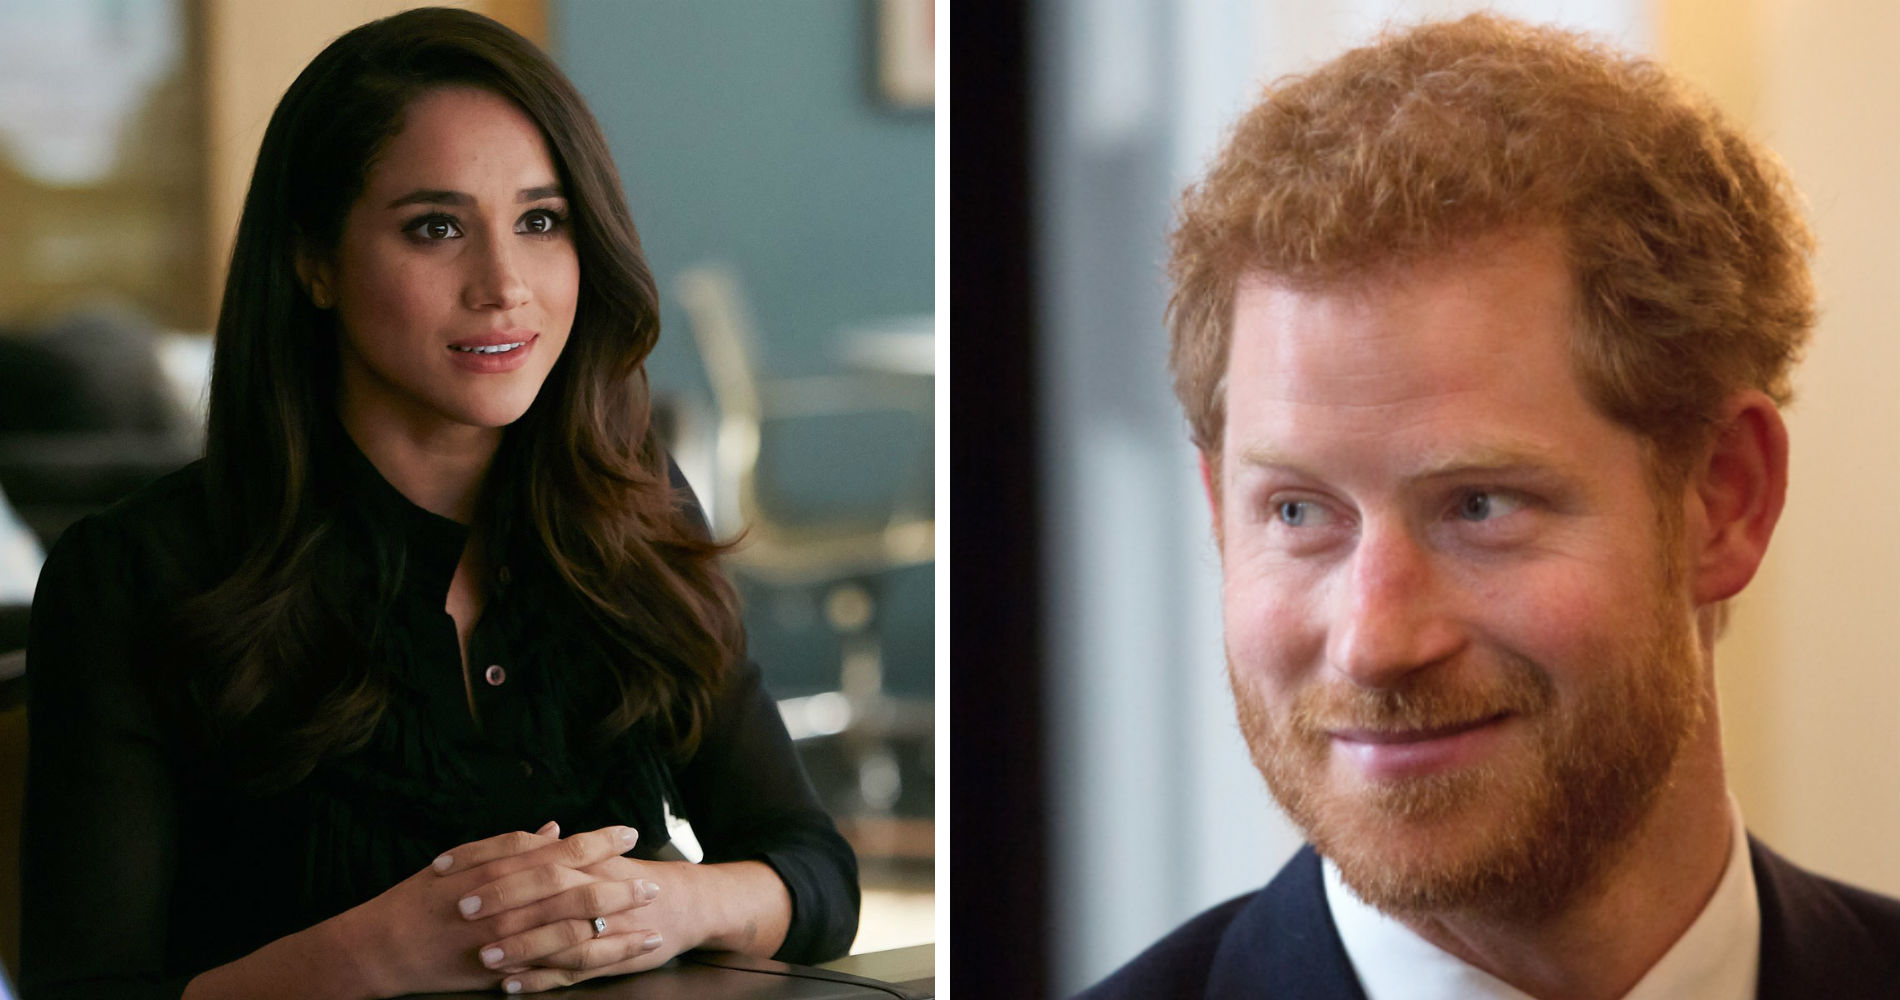 prince harry, meghan markle, engaged, engagment, royal family, england, hs